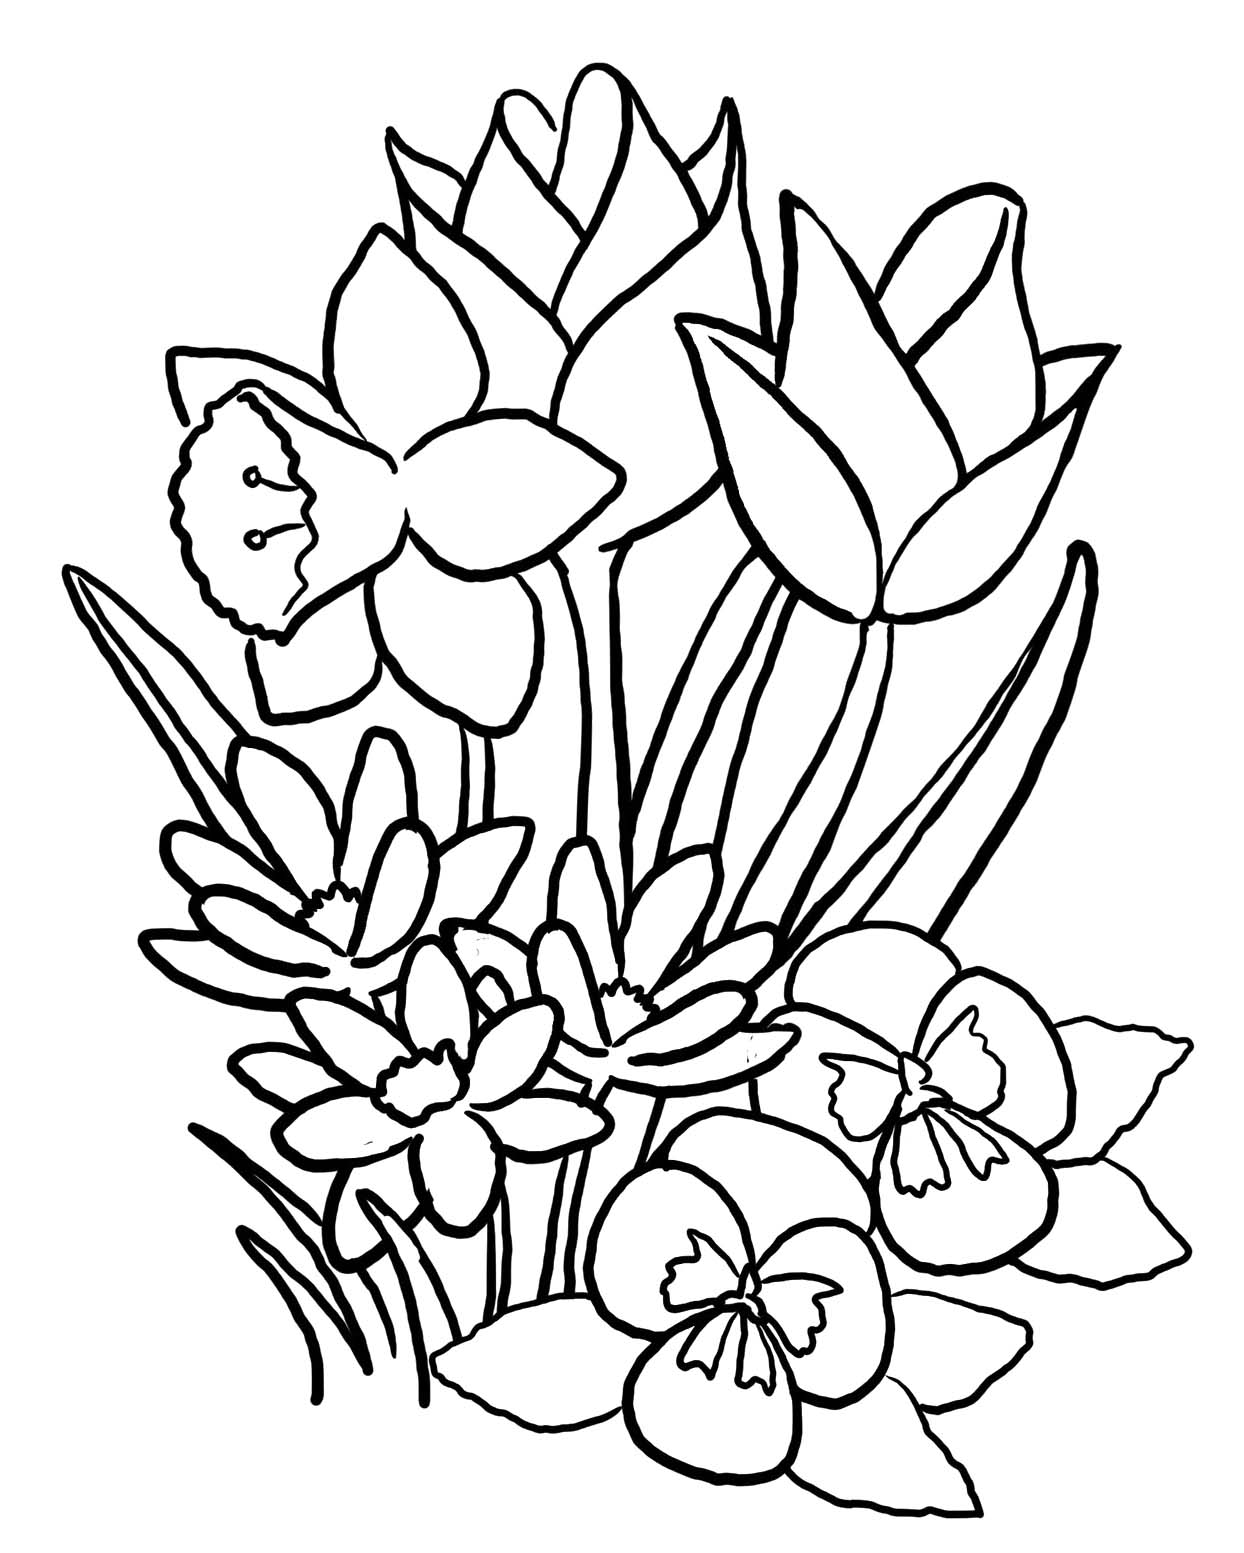 cute spring coloring pages | Cute Spring Coloring Pages - Coloring Home